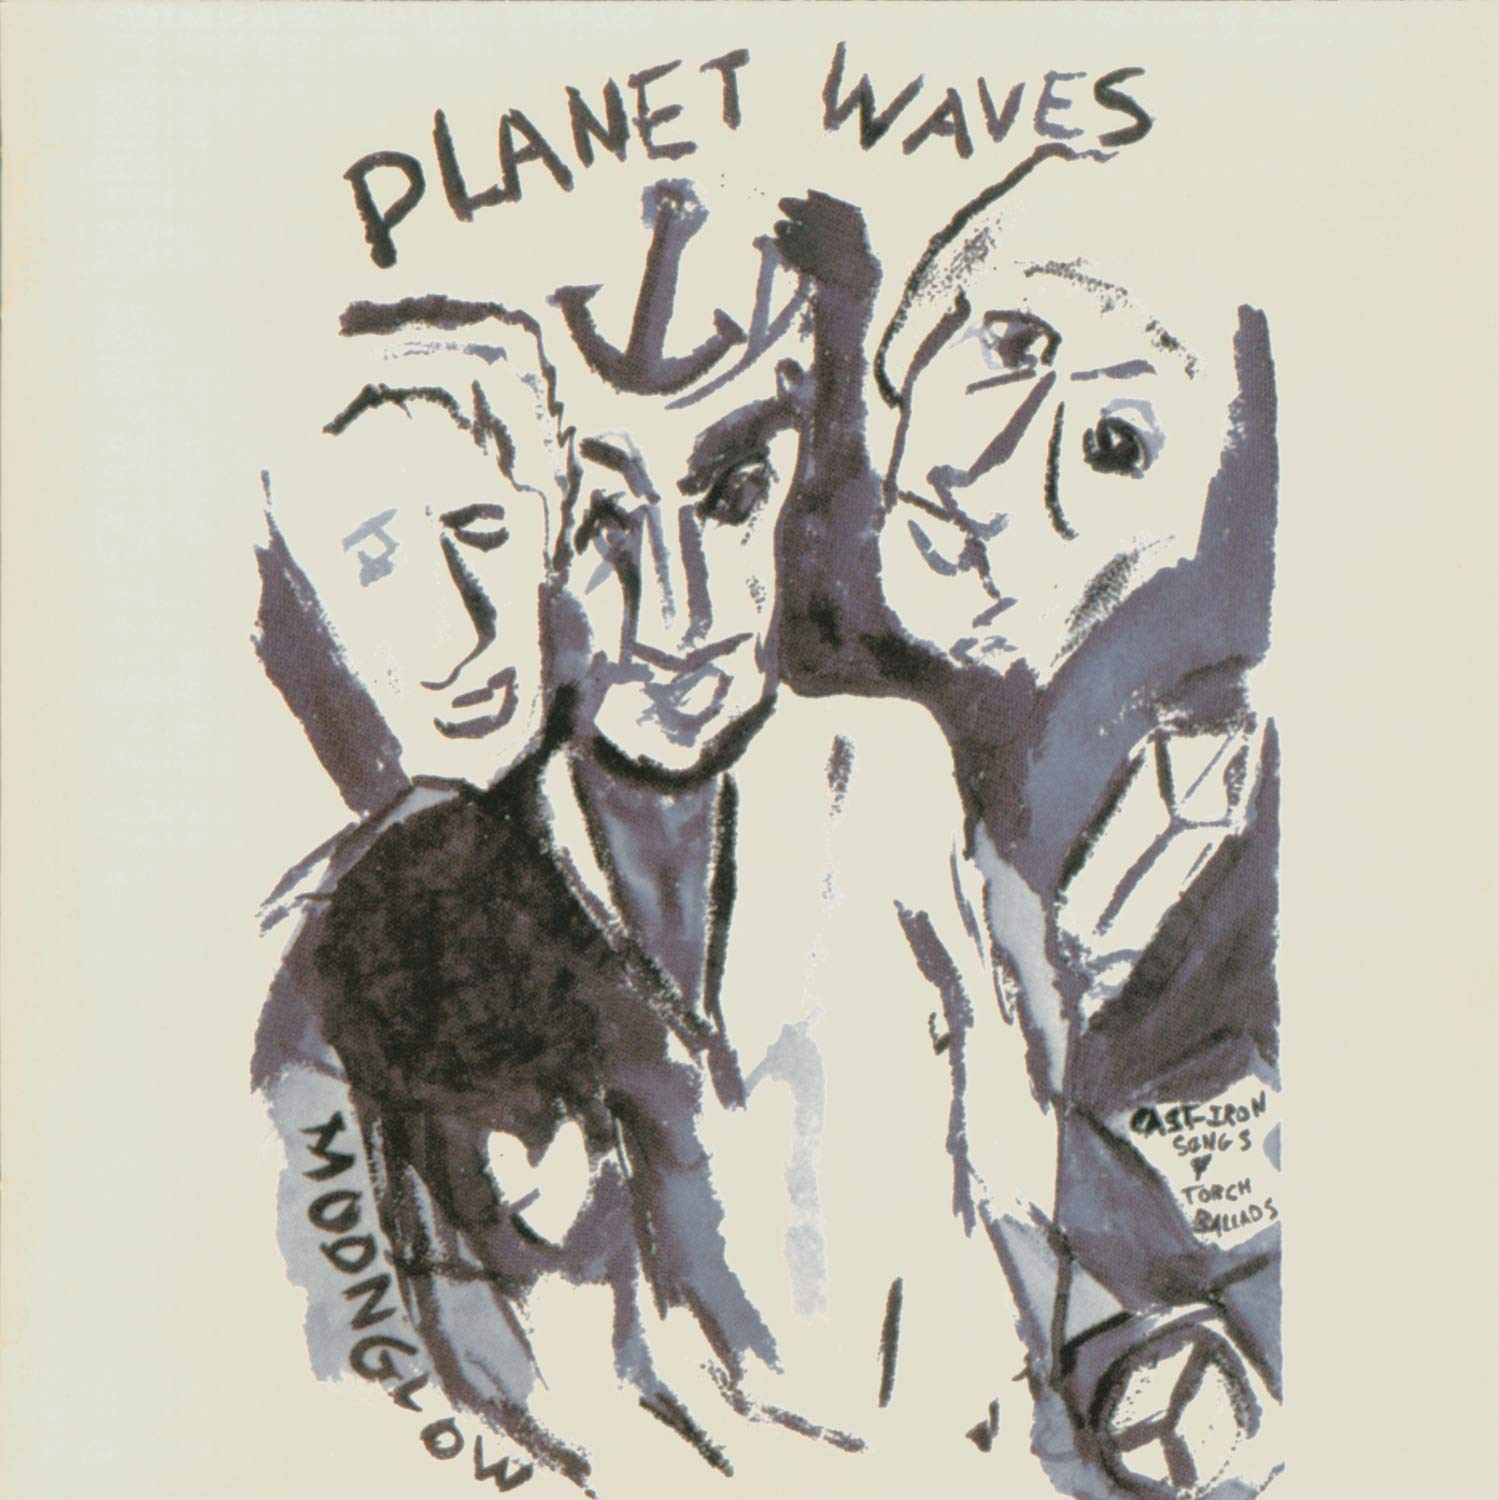 BOB DYLAN - PLANET WAVES - VINYL LP - Wah Wah Records